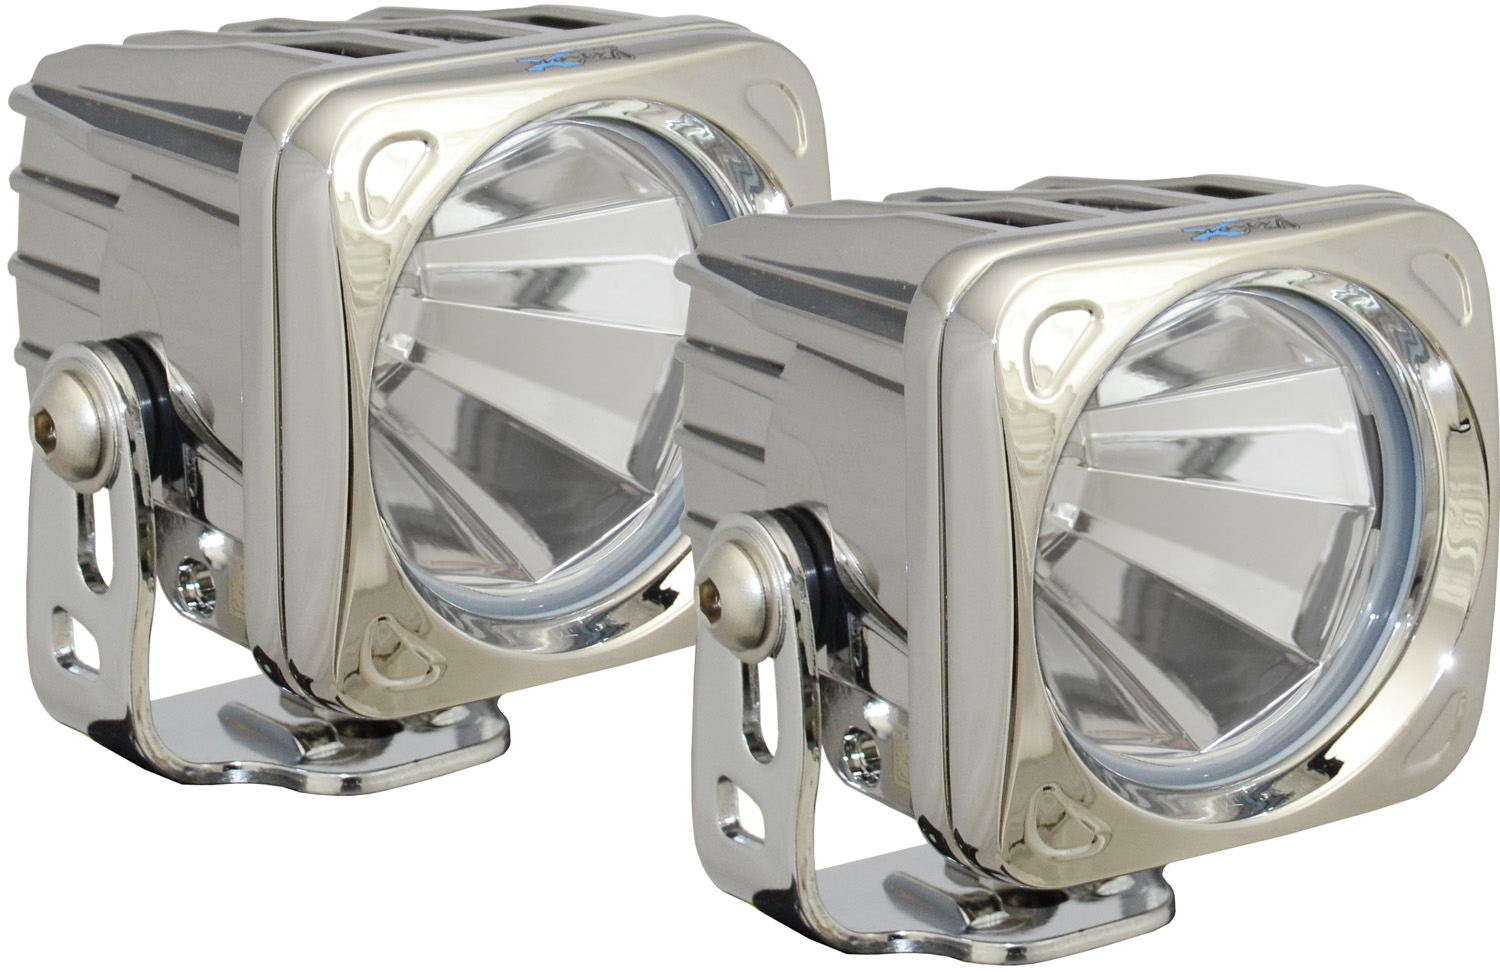 OPTIMUS SQUARE CHROME 1 10W LED 60° FLOOD KIT OF 2 LIGHTS